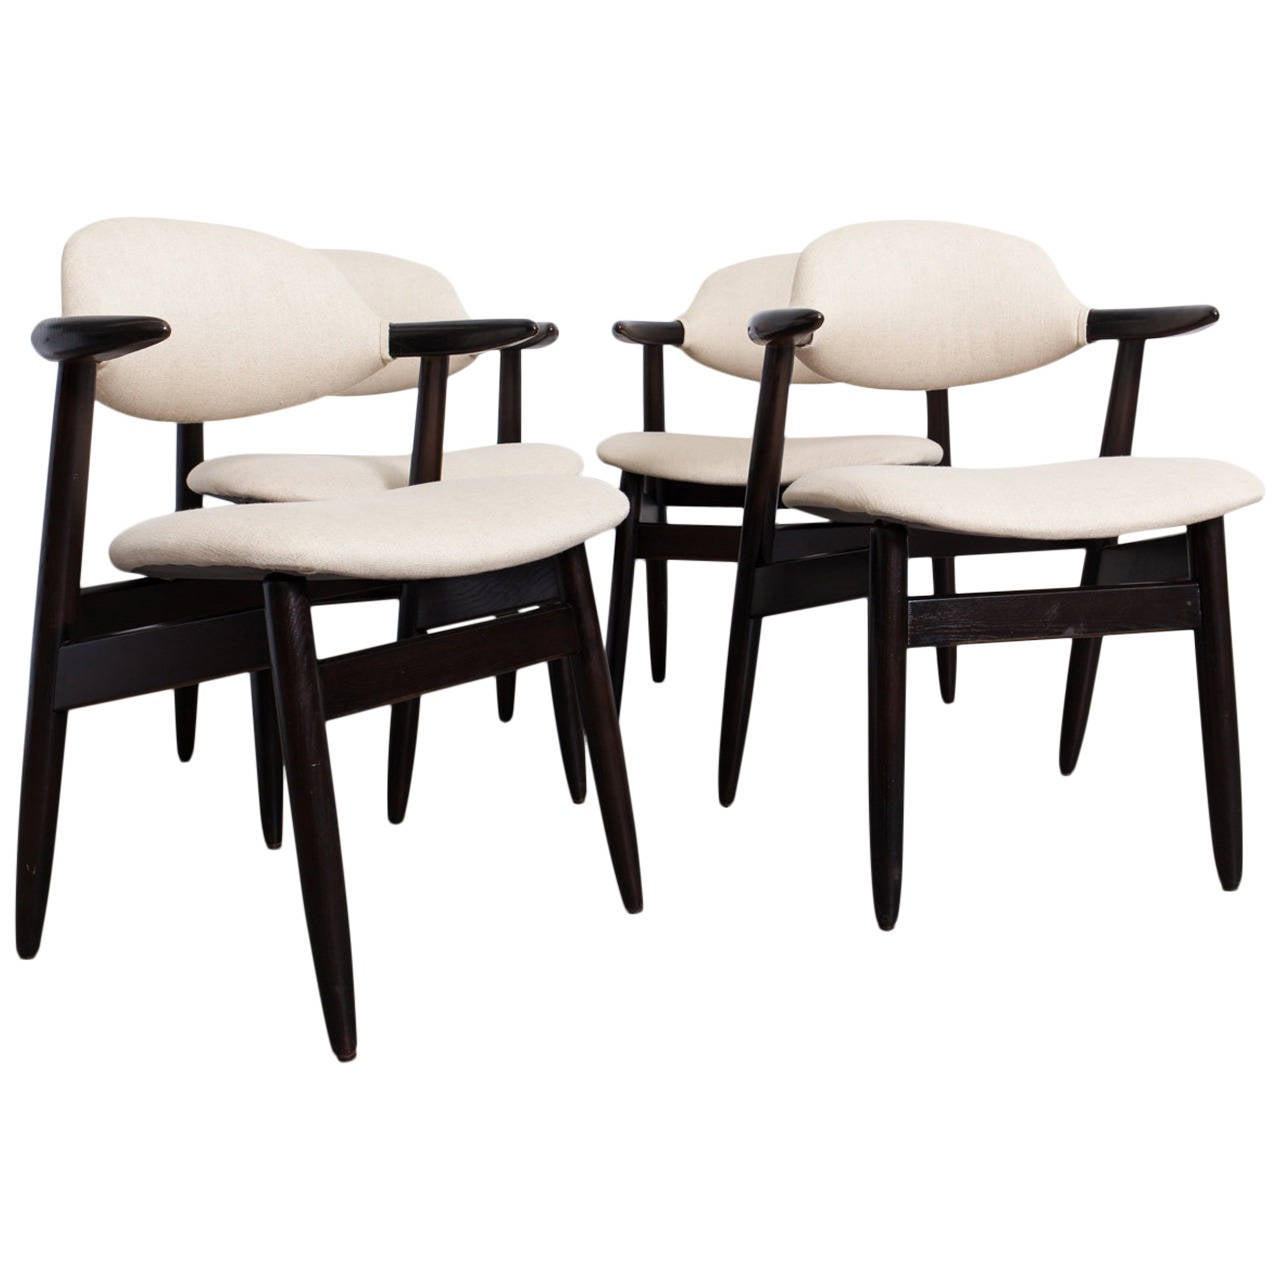 Kai Kristiansen Dining Room Chairs Dream Home Designing : 1505132l from recoverhome.com size 1280 x 1280 jpeg 72kB